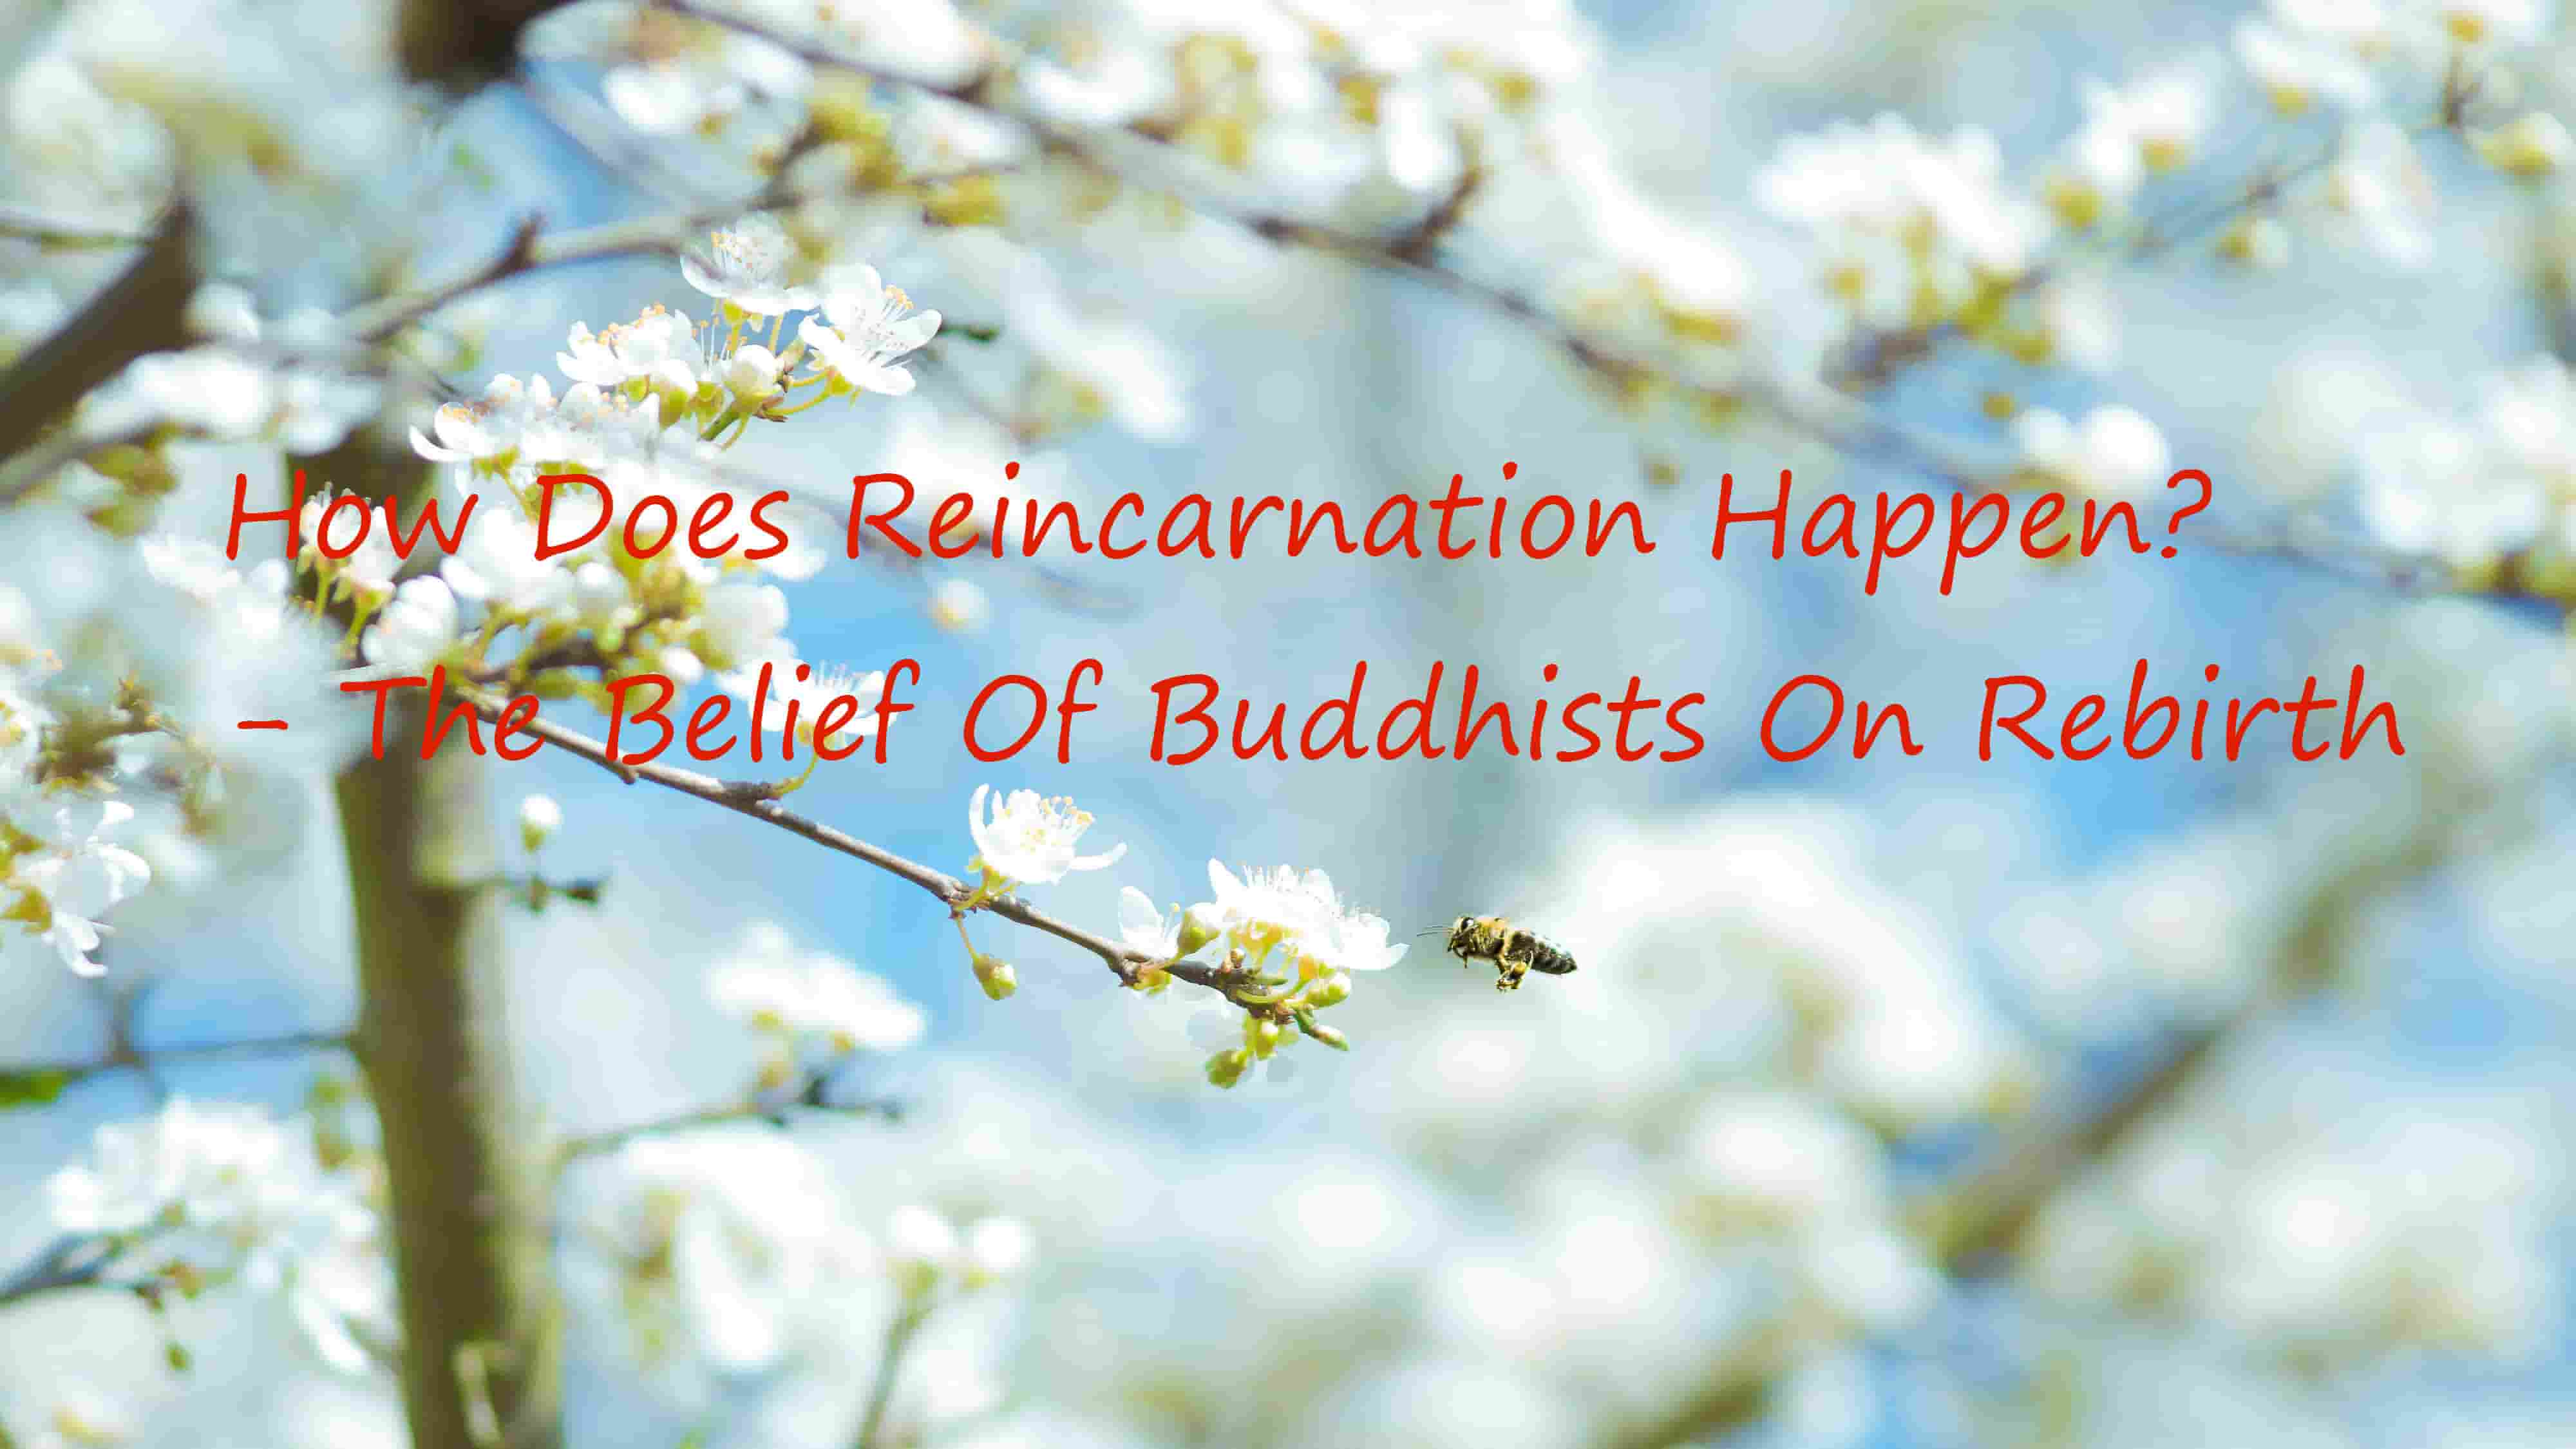 How Does Reincarnation Happen? - The Belief Of Buddhists On Rebirth